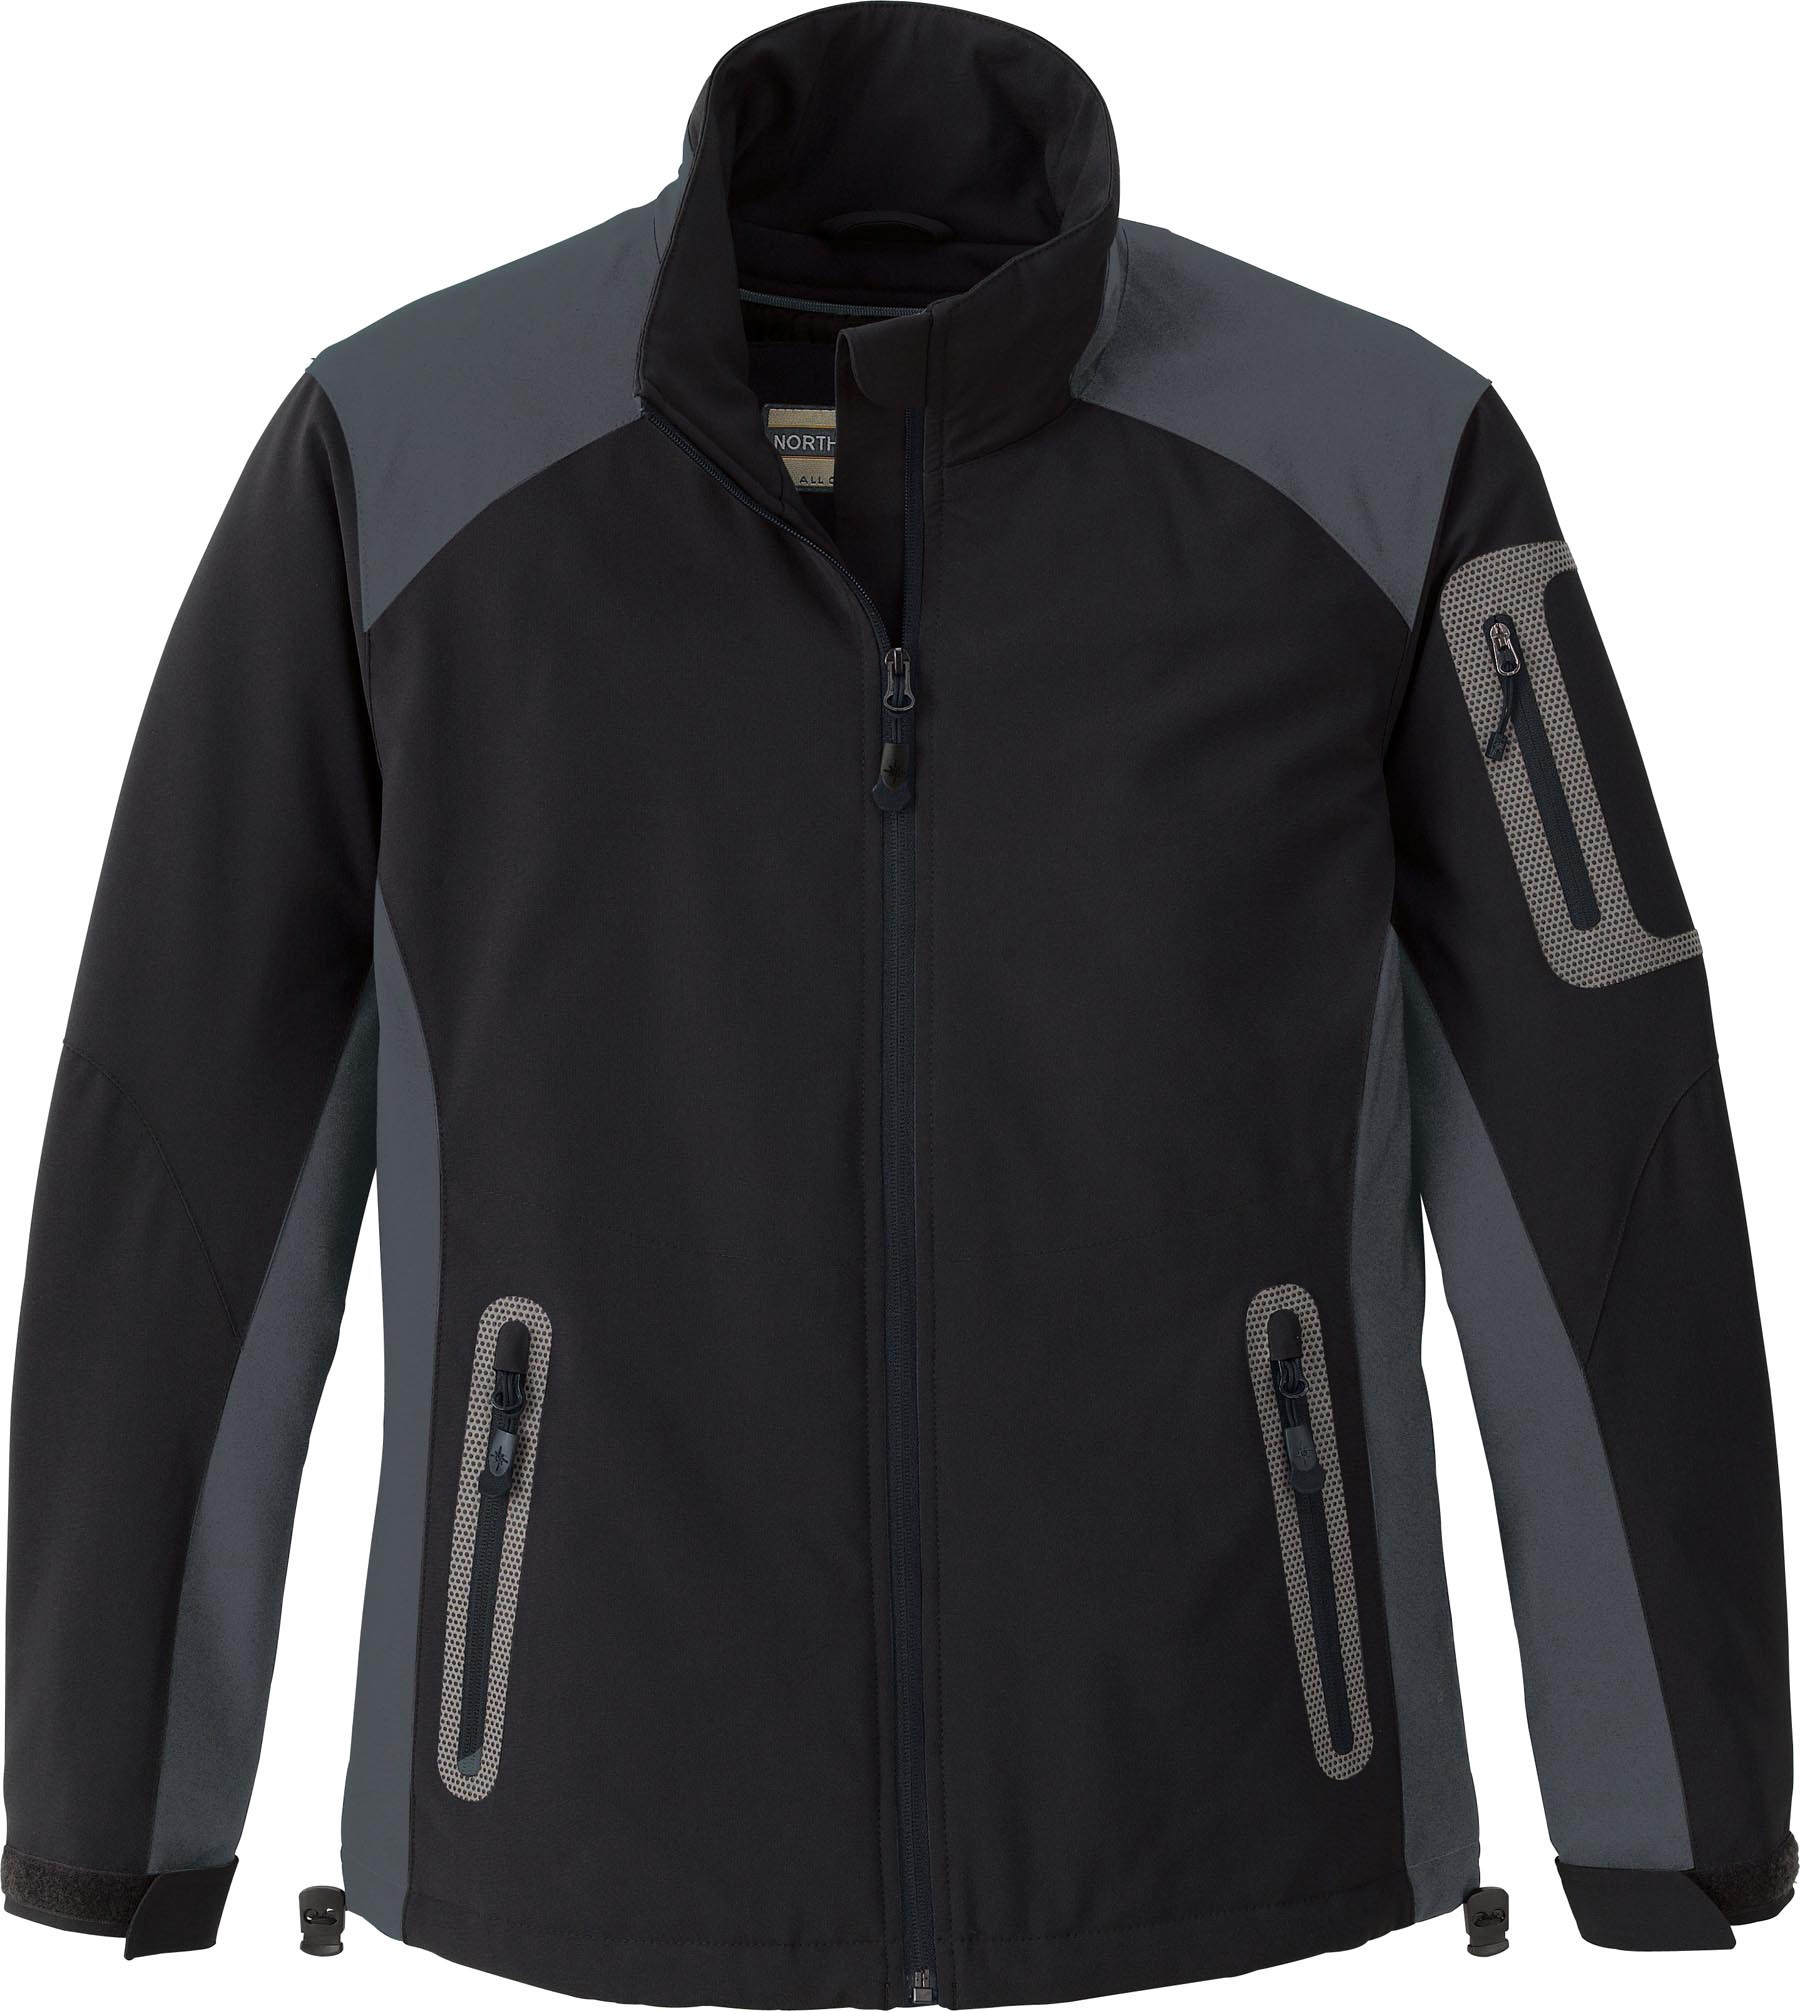 Ash City Performance Jackets 78070 - Ladies' Insulated ...